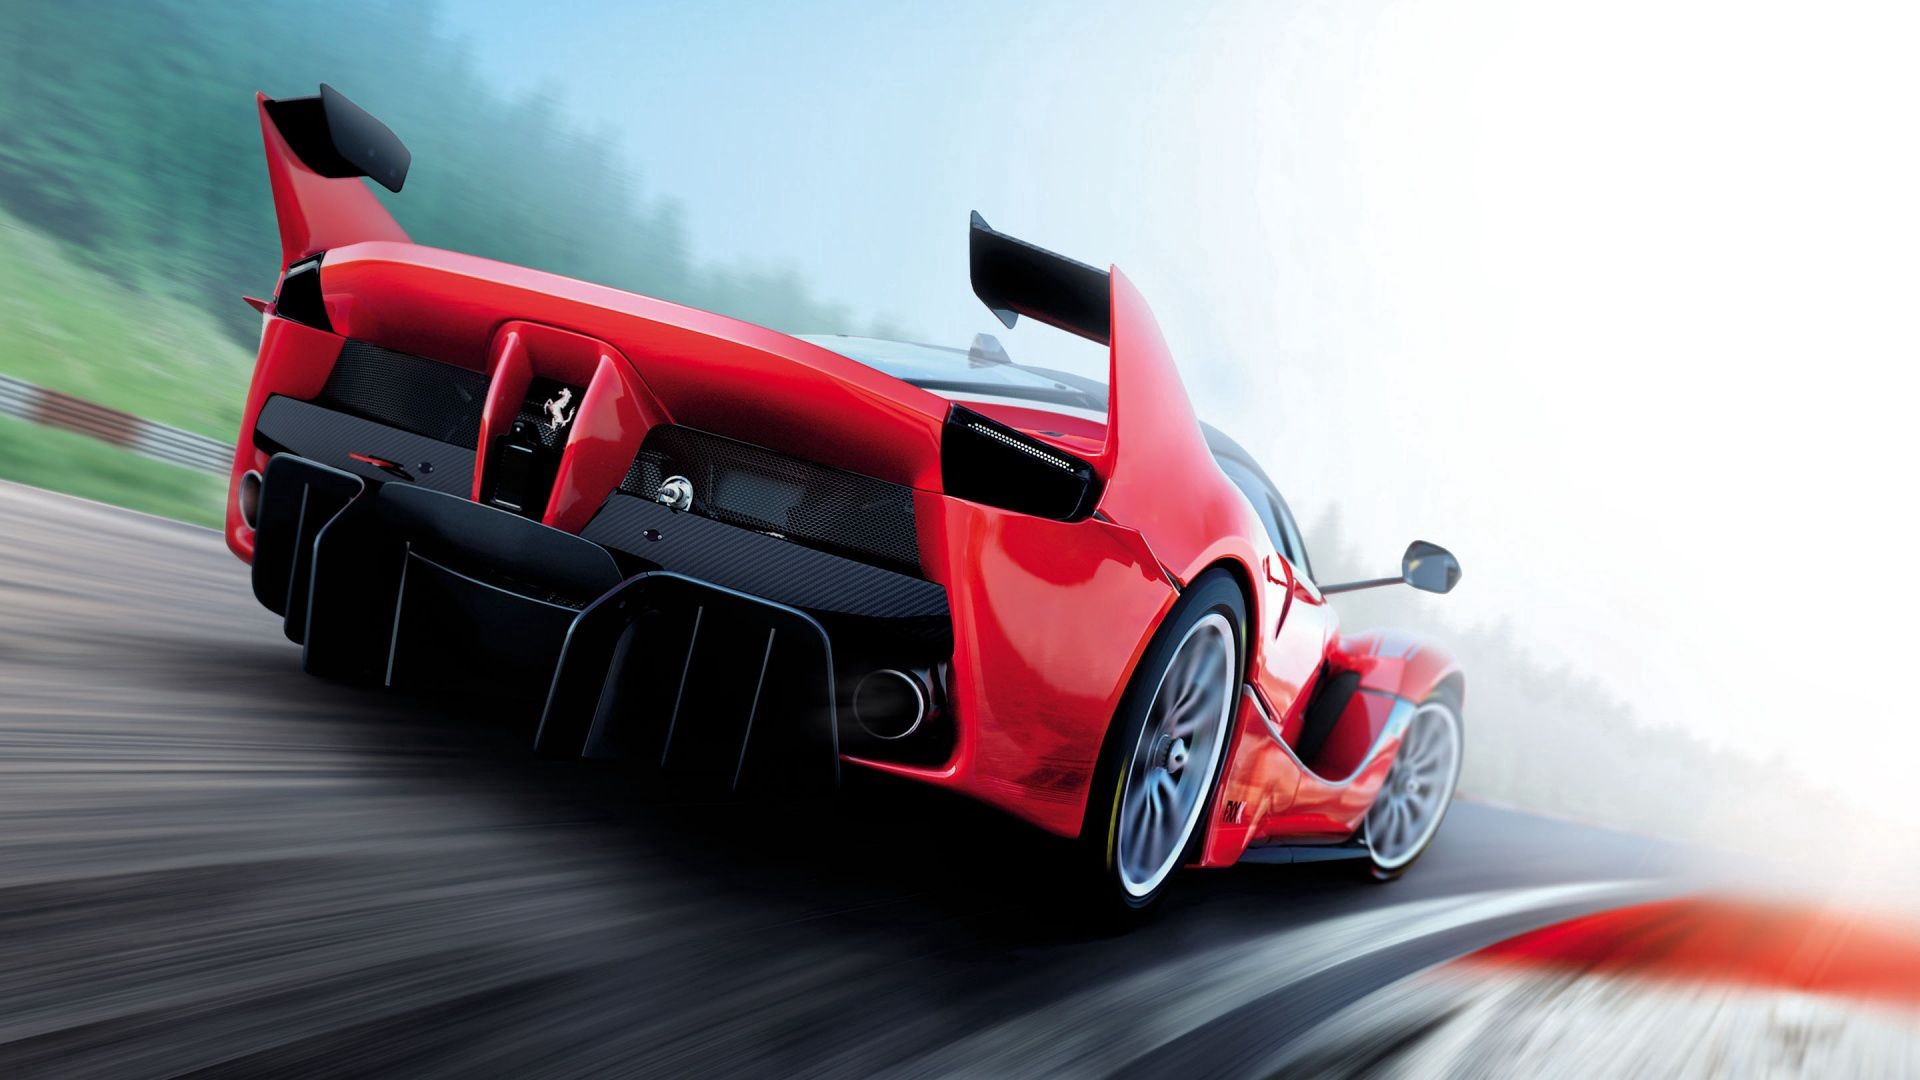 138345 download wallpaper Cars, Assetto Corsa, Ferrari, Races, Simulator screensavers and pictures for free